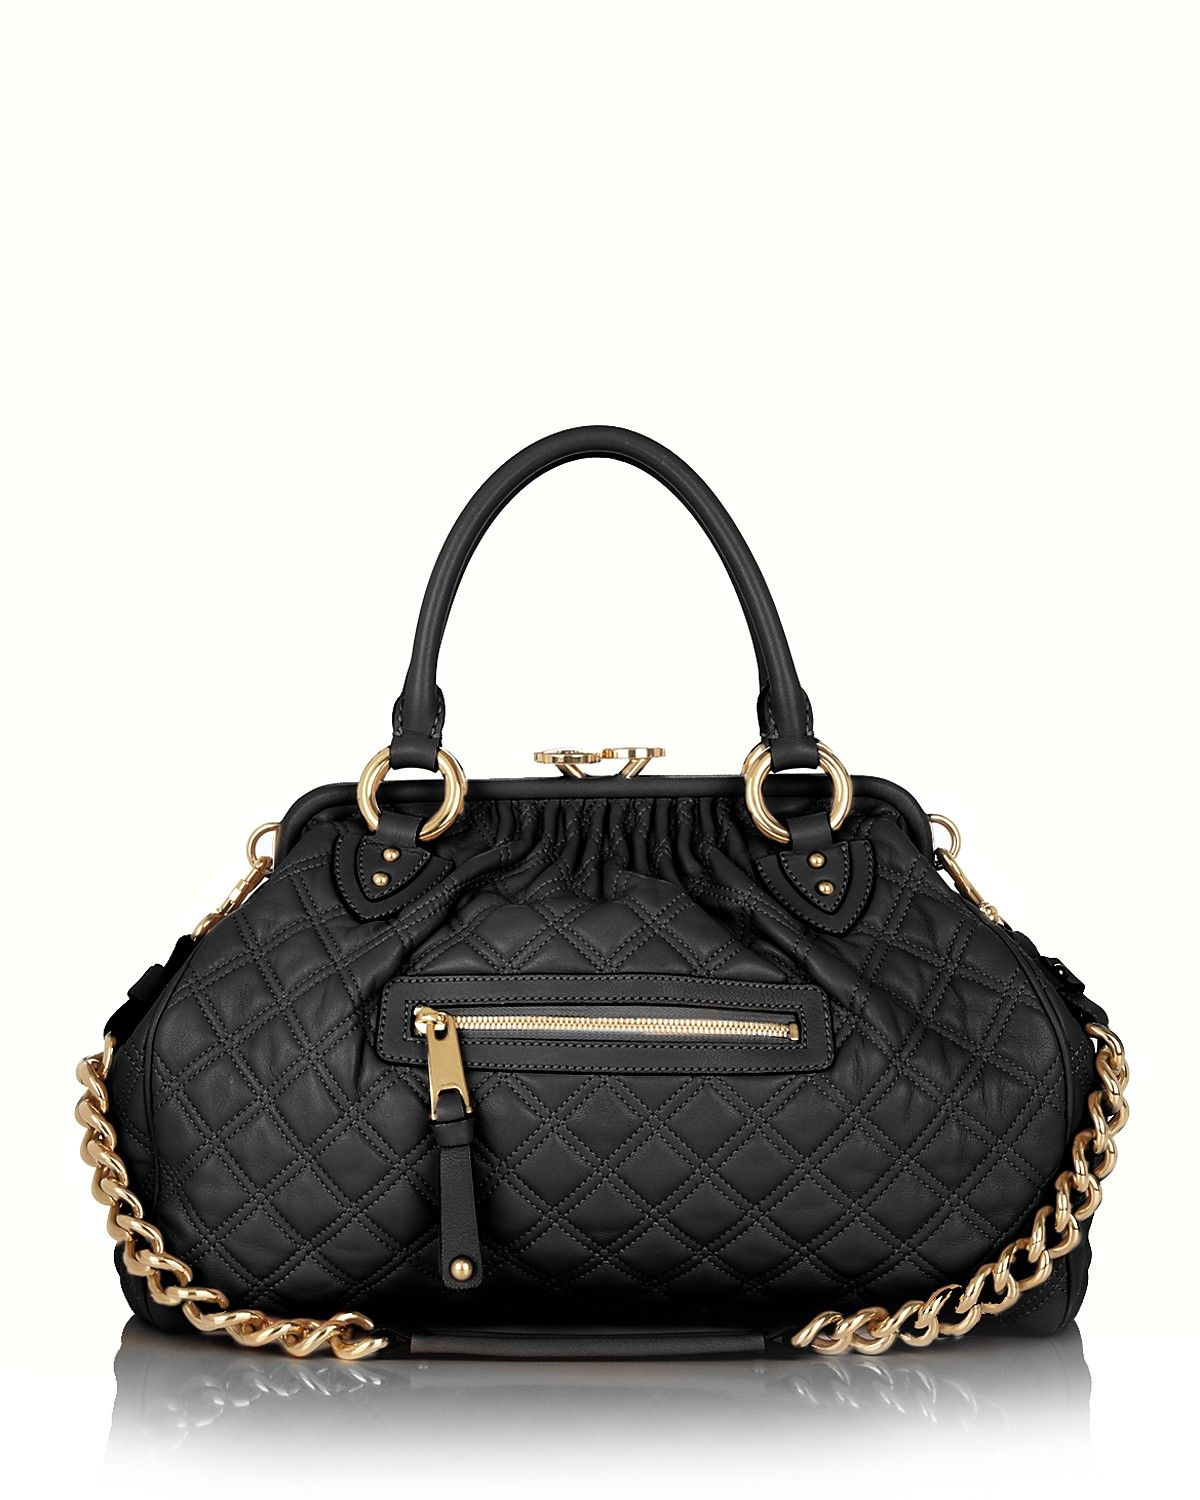 4ae911476e9d Marc Jacobs Stam Bag. I will have one eventually.